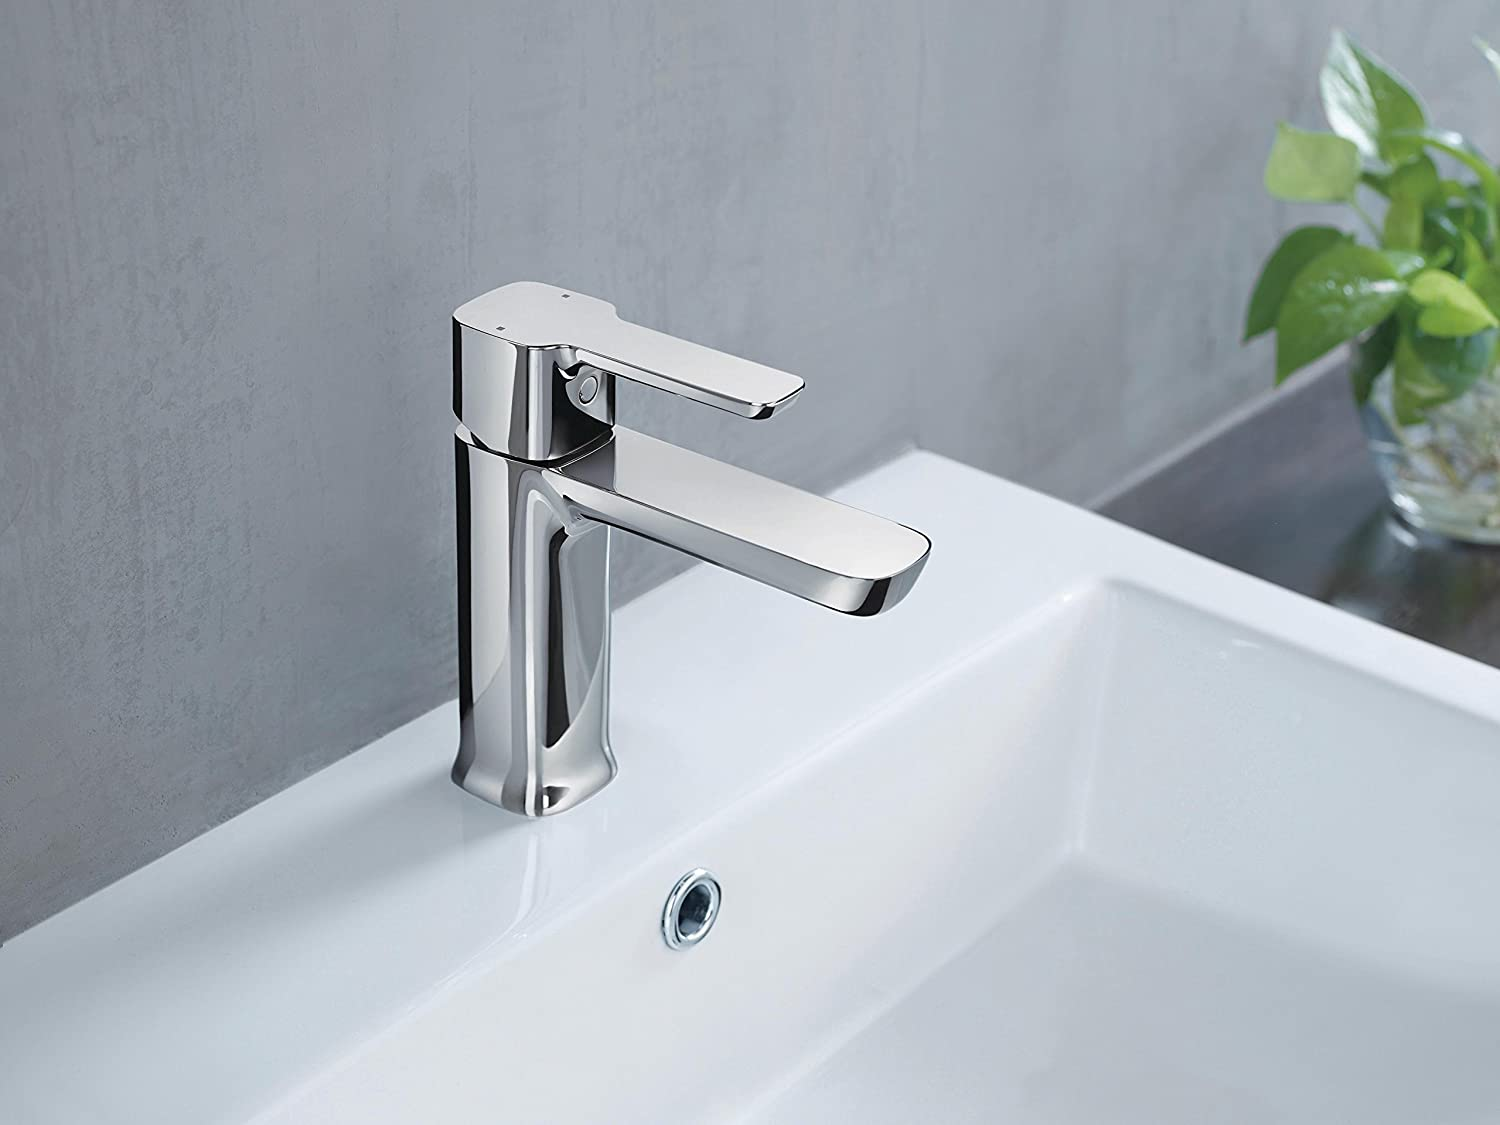 Chrome 581LF-PP Delta Faucet Modern Single-Handle Bathroom Faucet with Drain Assembly